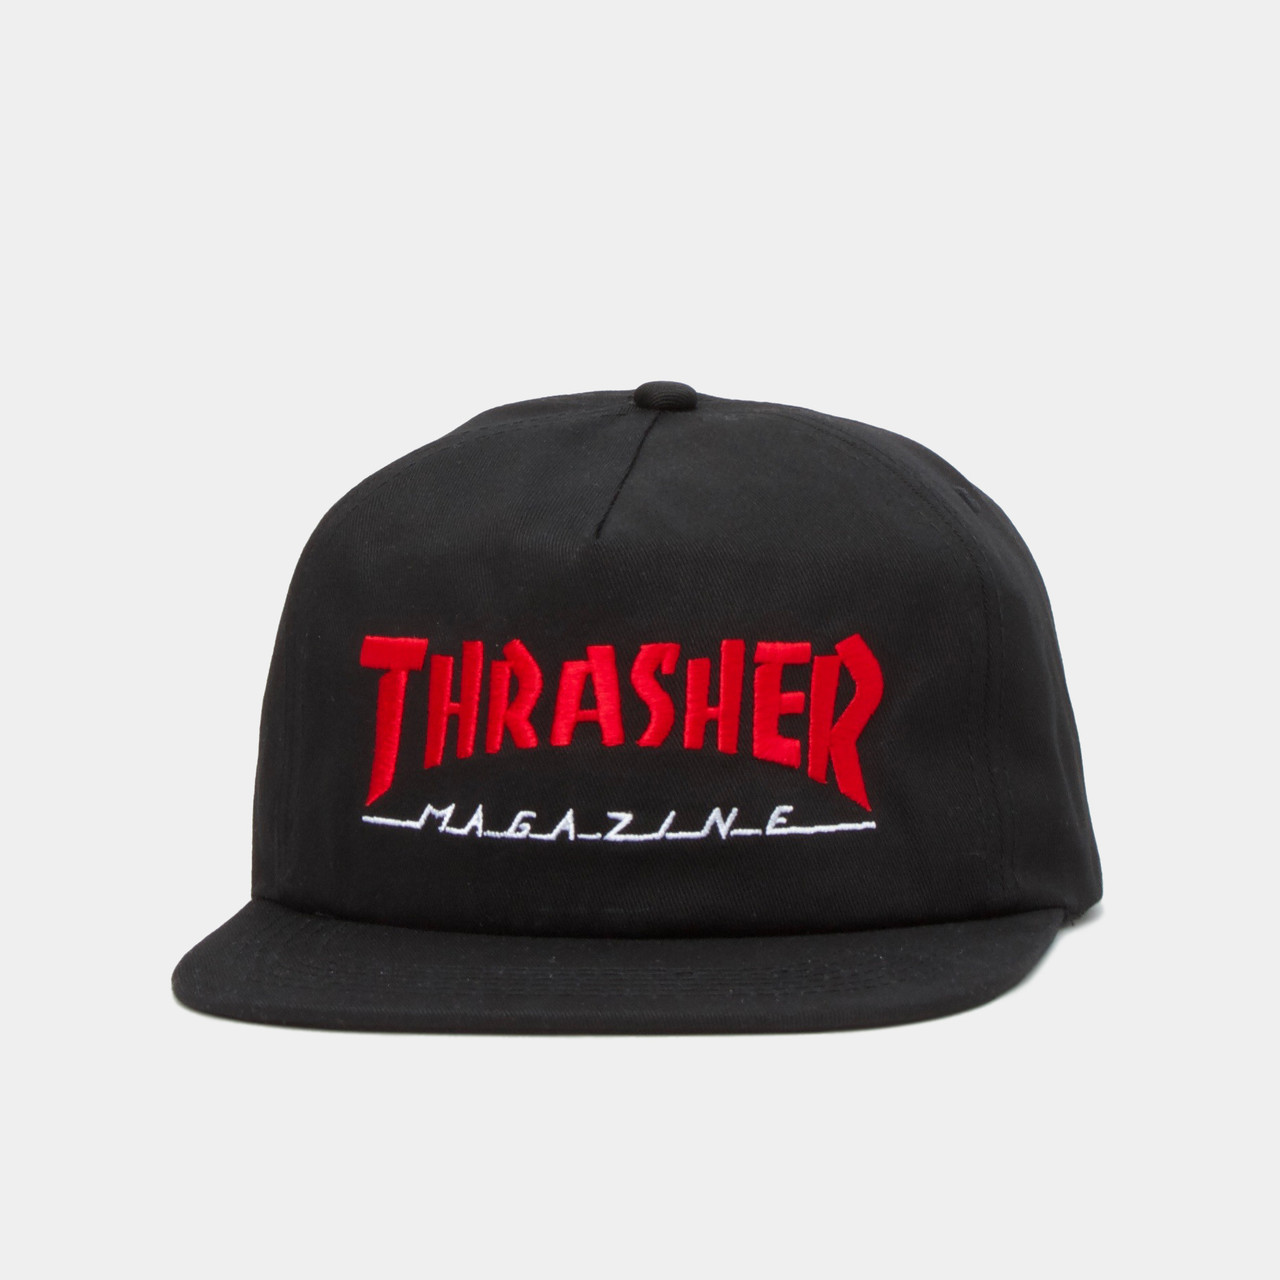 3abb8435bf0 Thrasher Two Tone Magazine Hat - Black Red - The Boardroom